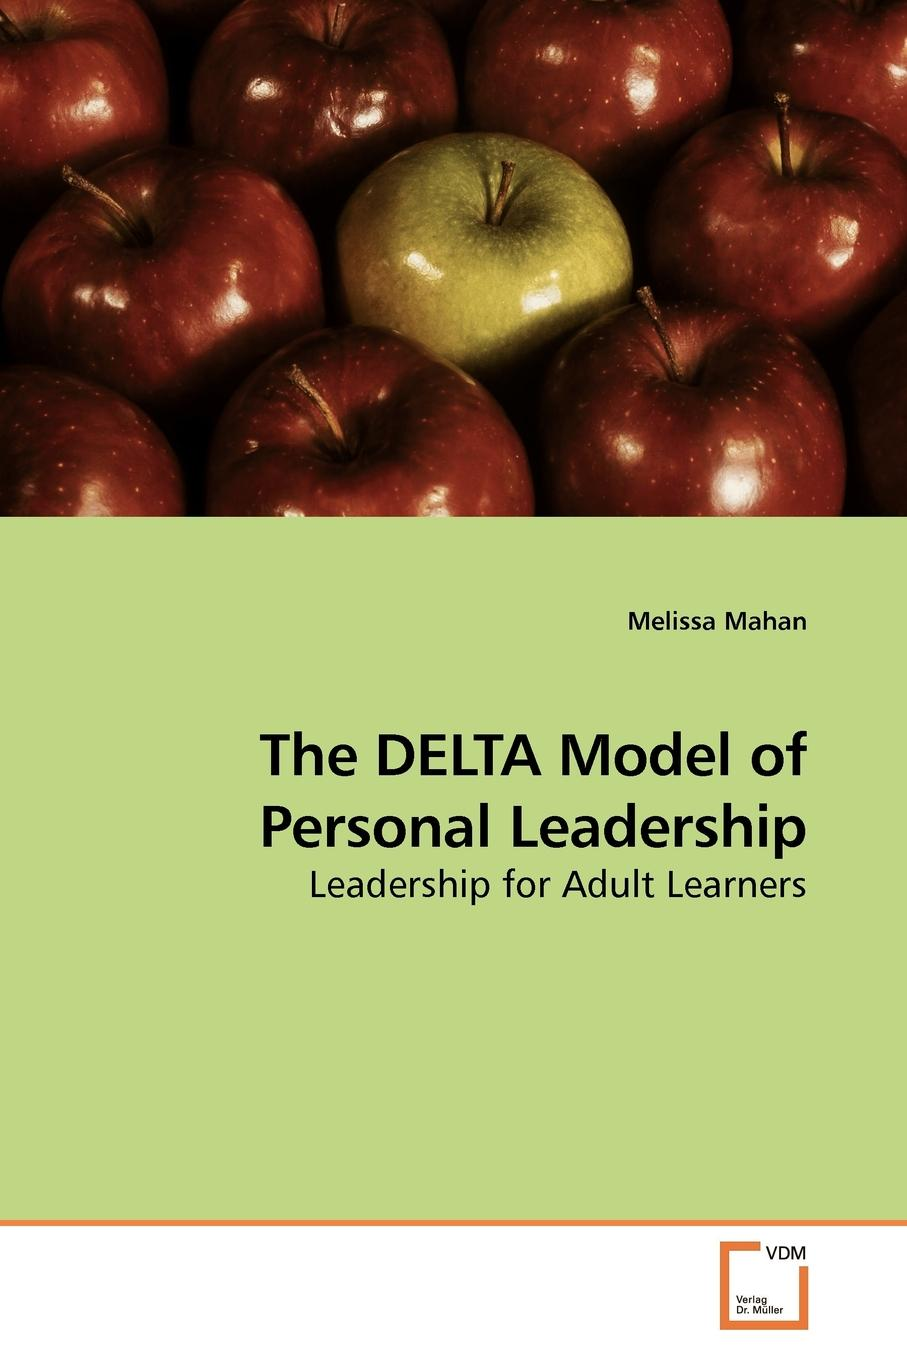 Melissa Mahan The DELTA Model of Personal Leadership devon bandison fatherhood is leadership your playbook for success self leadership and a richer life